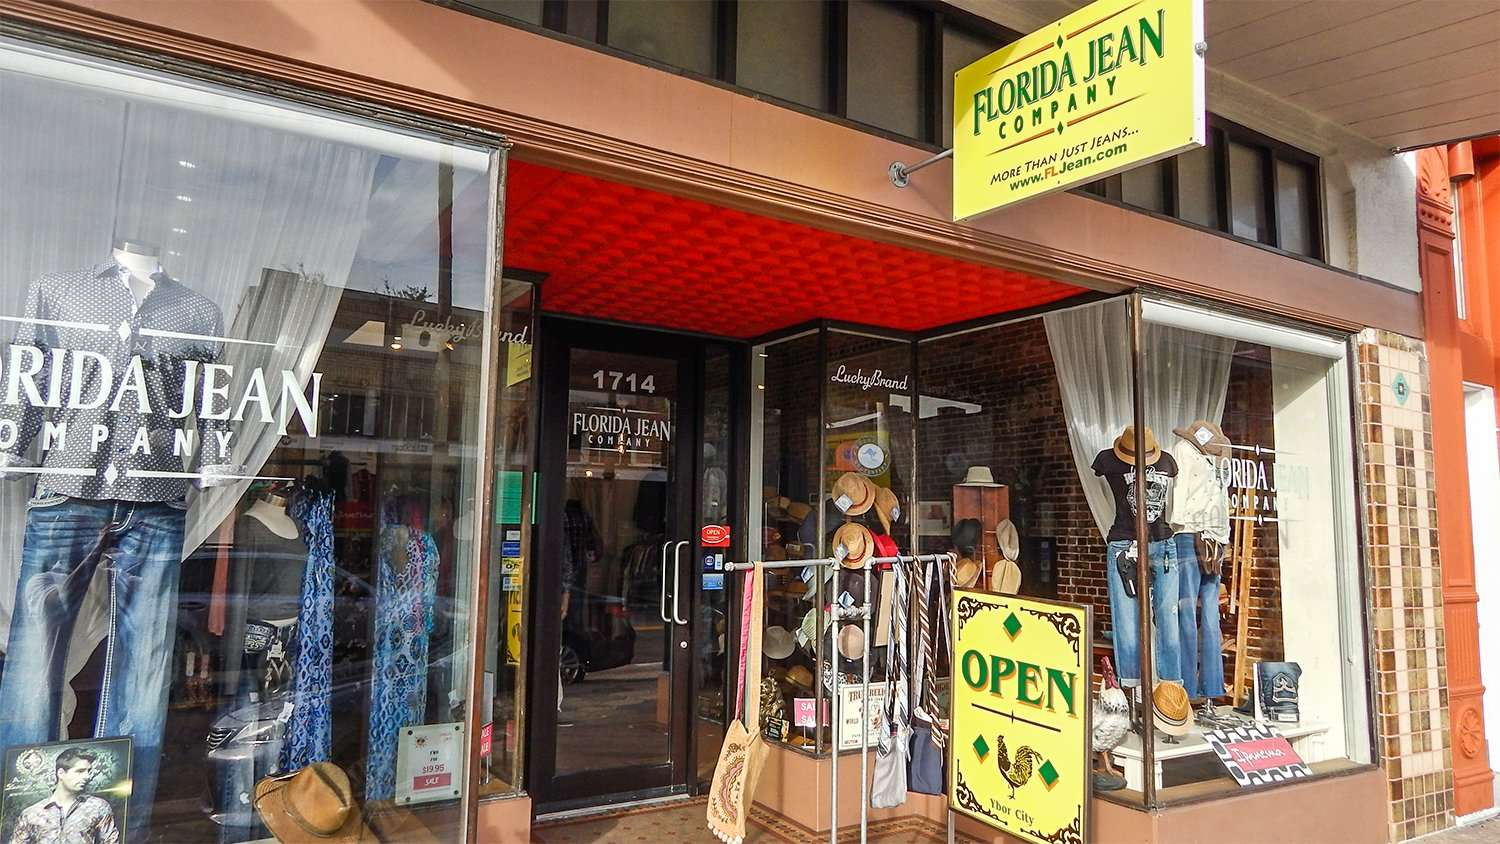 Florida Jean Company on 7th Ave in Historic Ybor City in Tampa, FL